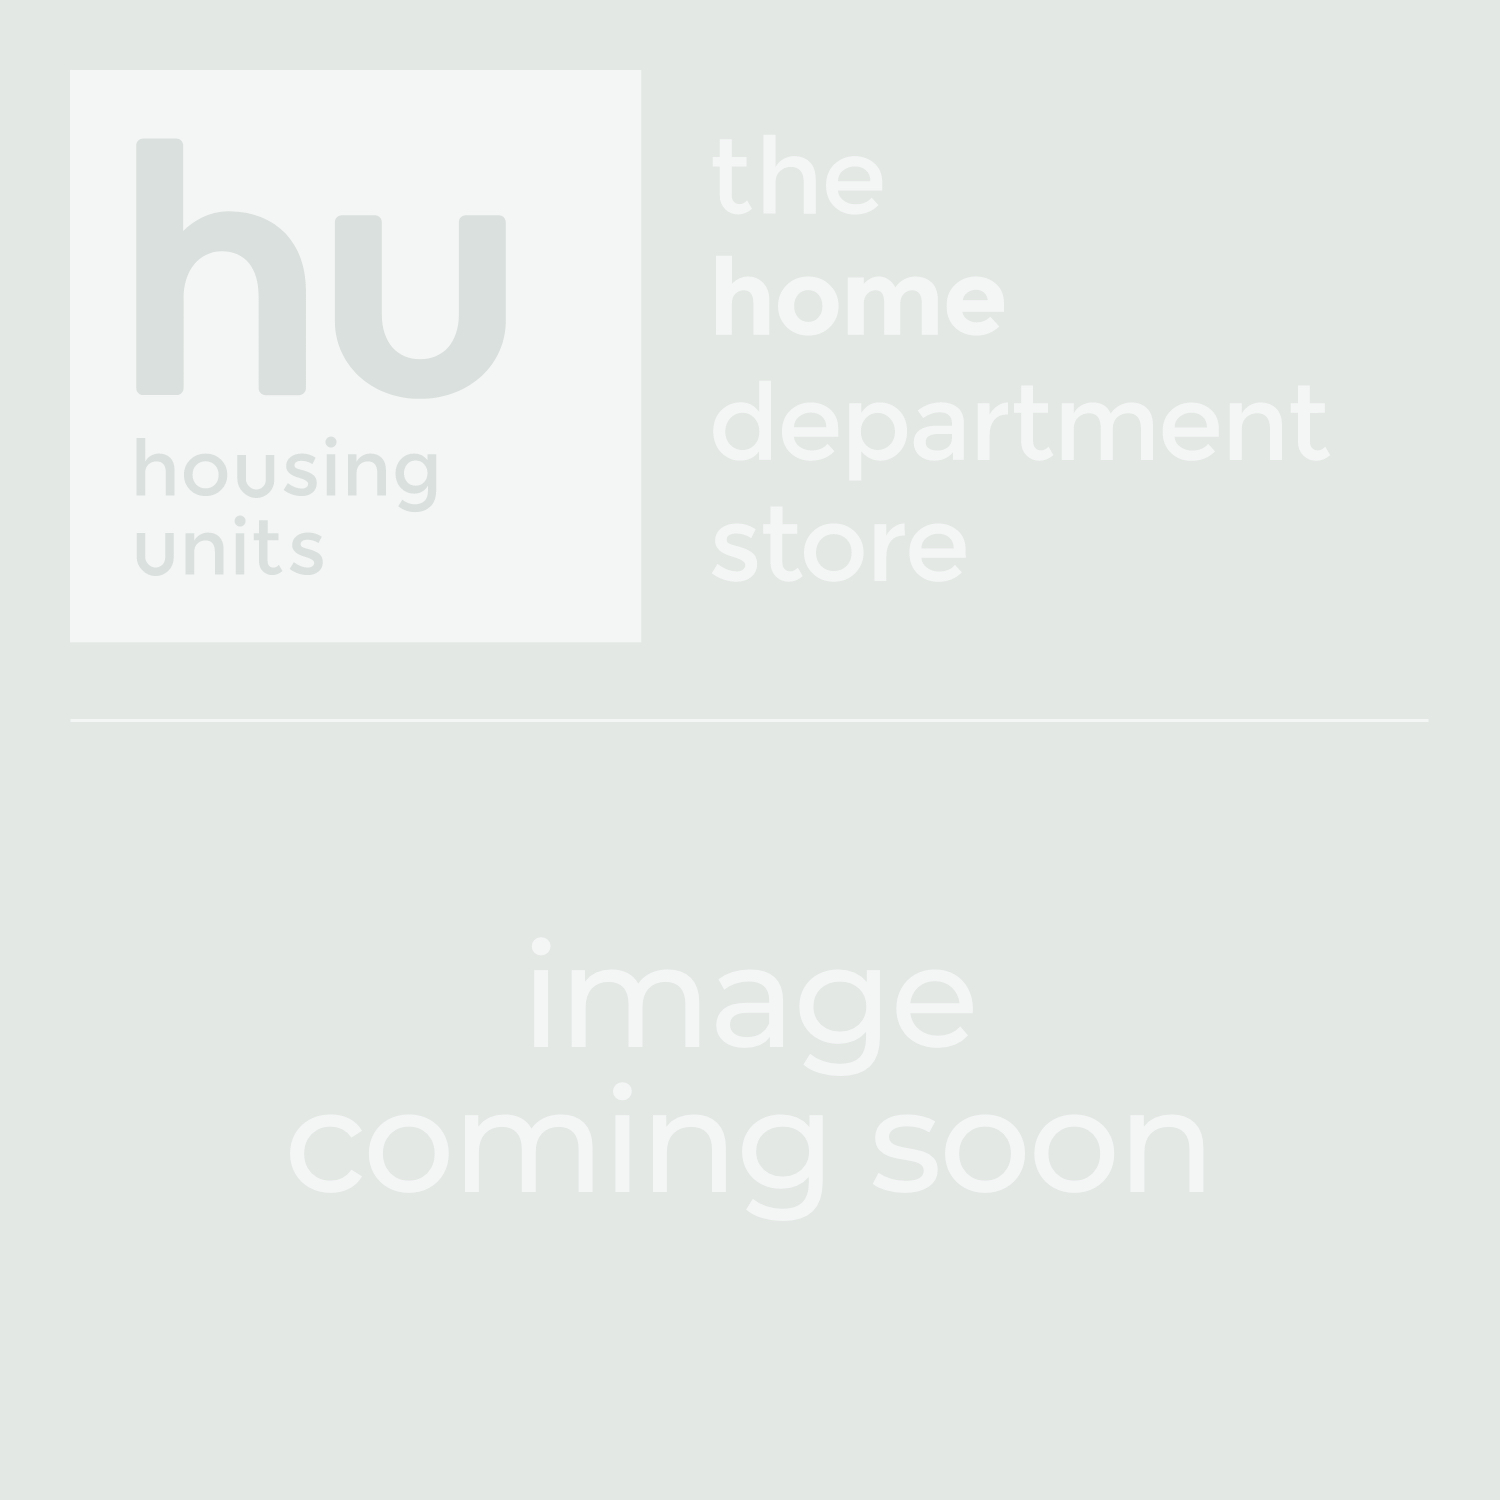 Breville Flow Slate Grey 4 Slice Toaster | Housing Units